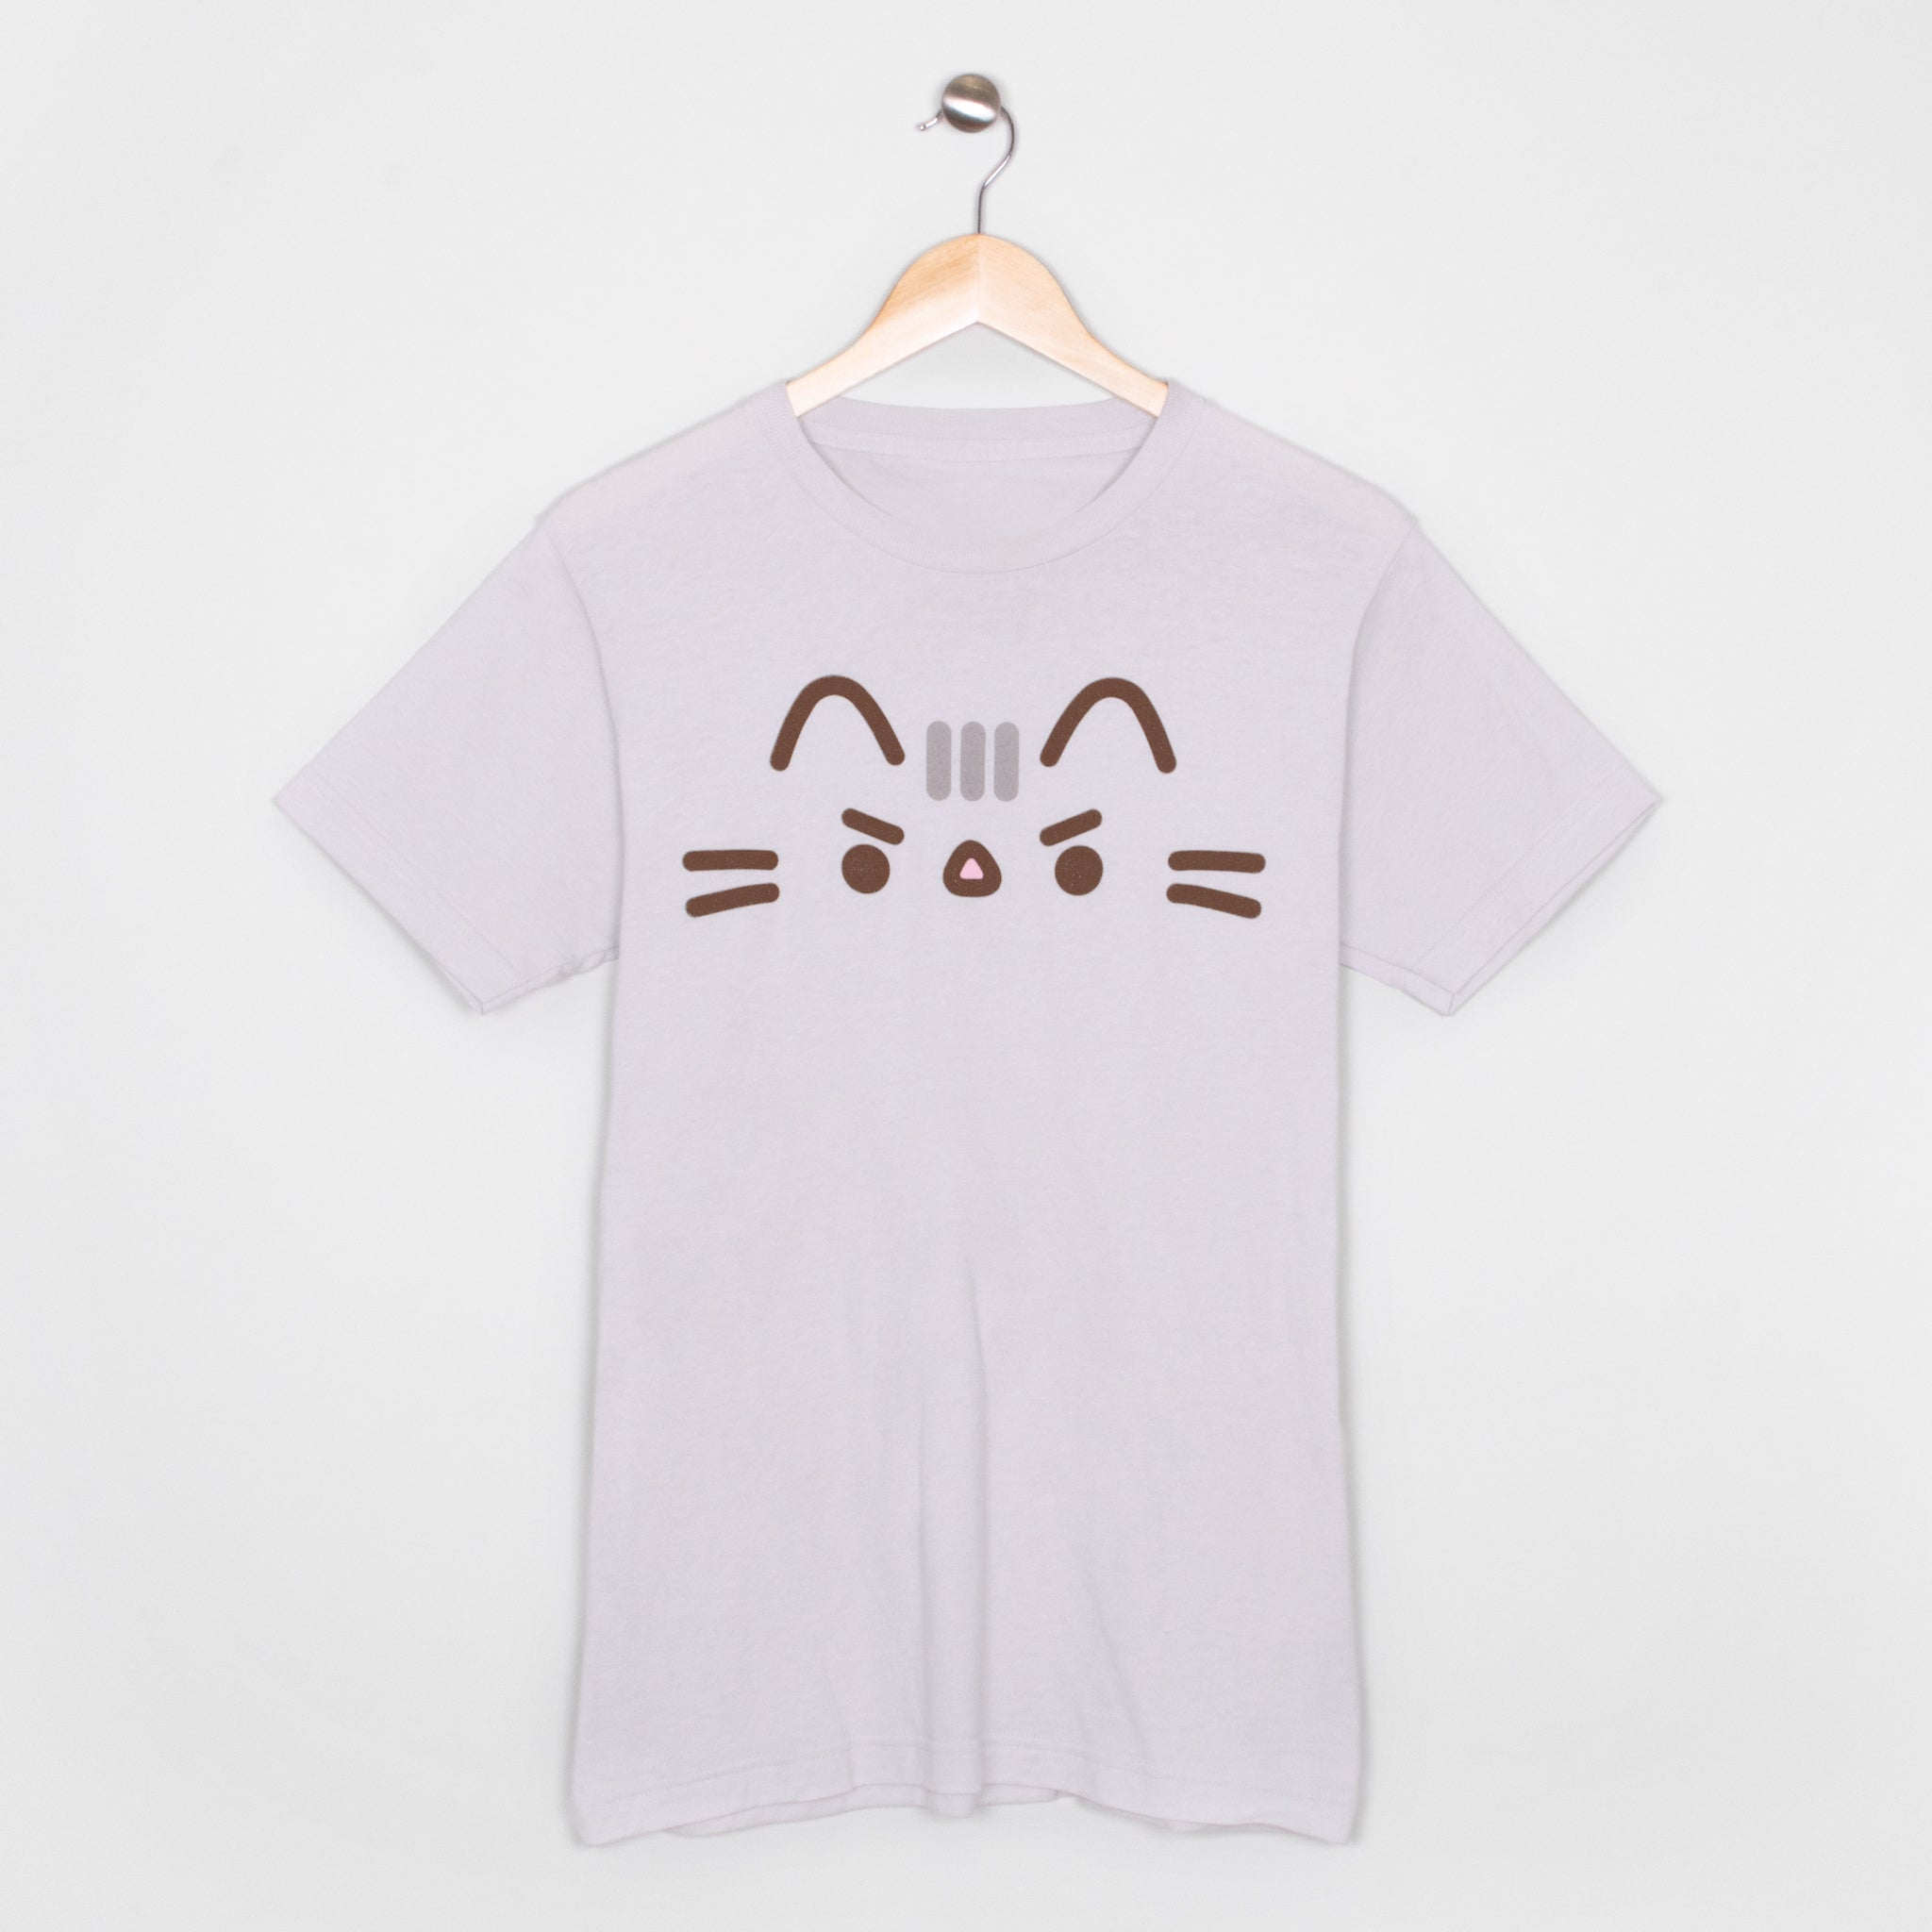 pusheen angry cute cat face short sleeve apparel t-shirt shirt culturefly